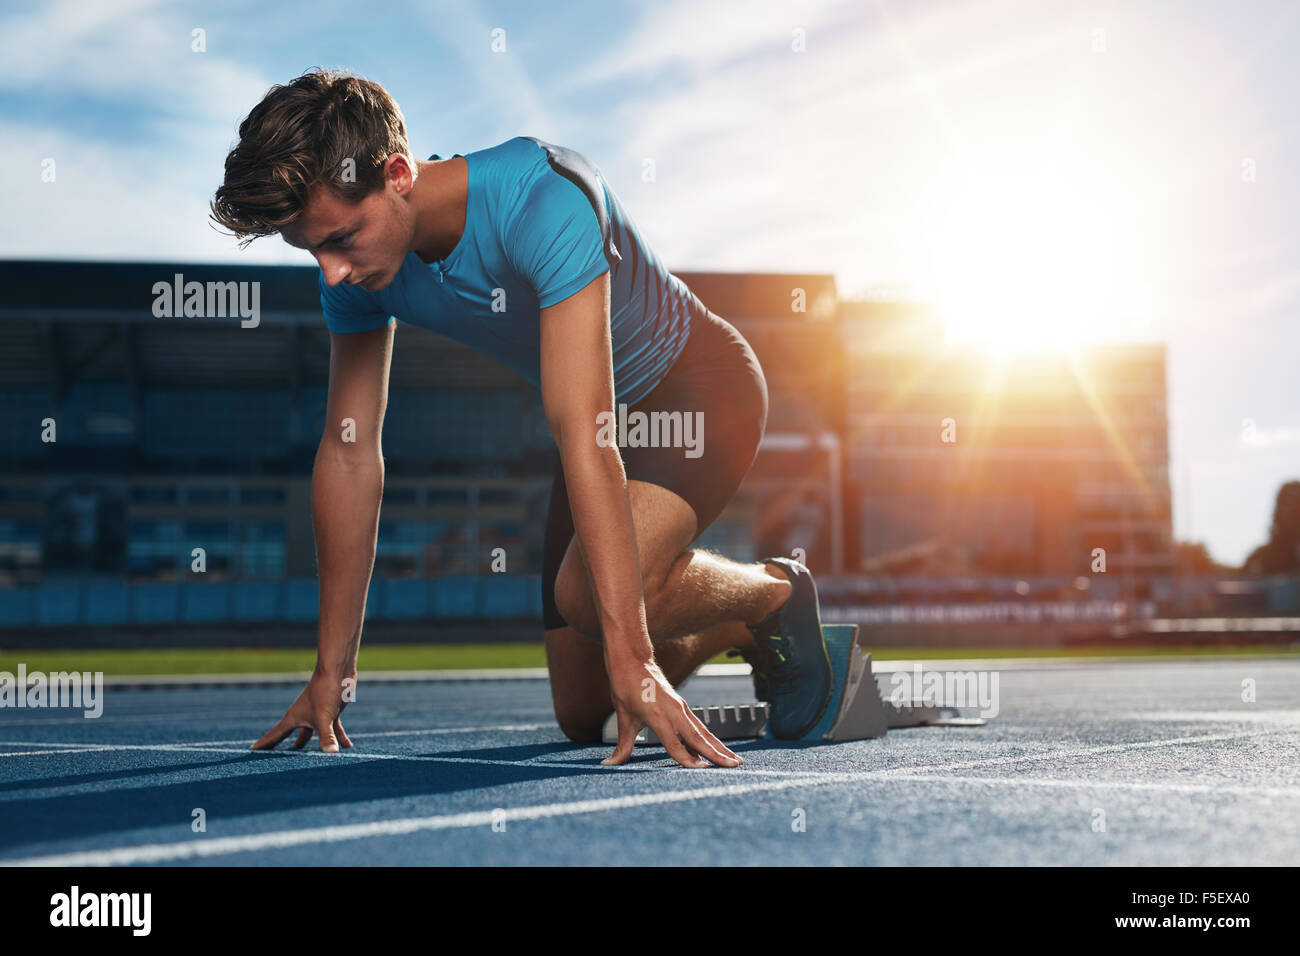 Young male athlete at starting block on running track. Young man in starting position for running on sports track. - Stock Image